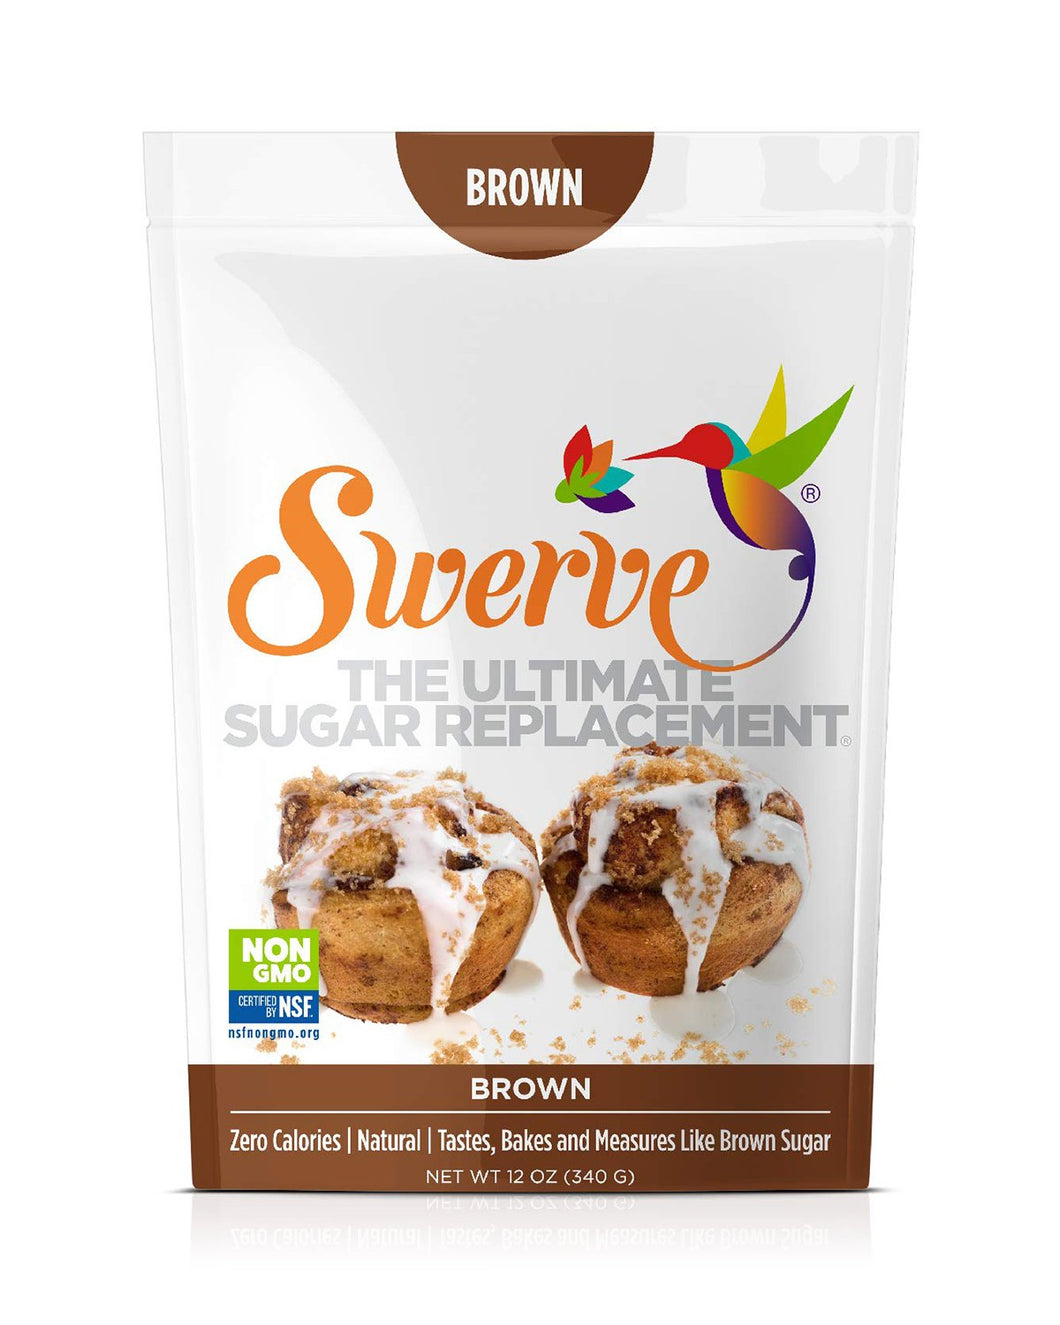 Brown Sugar Replacement by Swerve, 12 oz